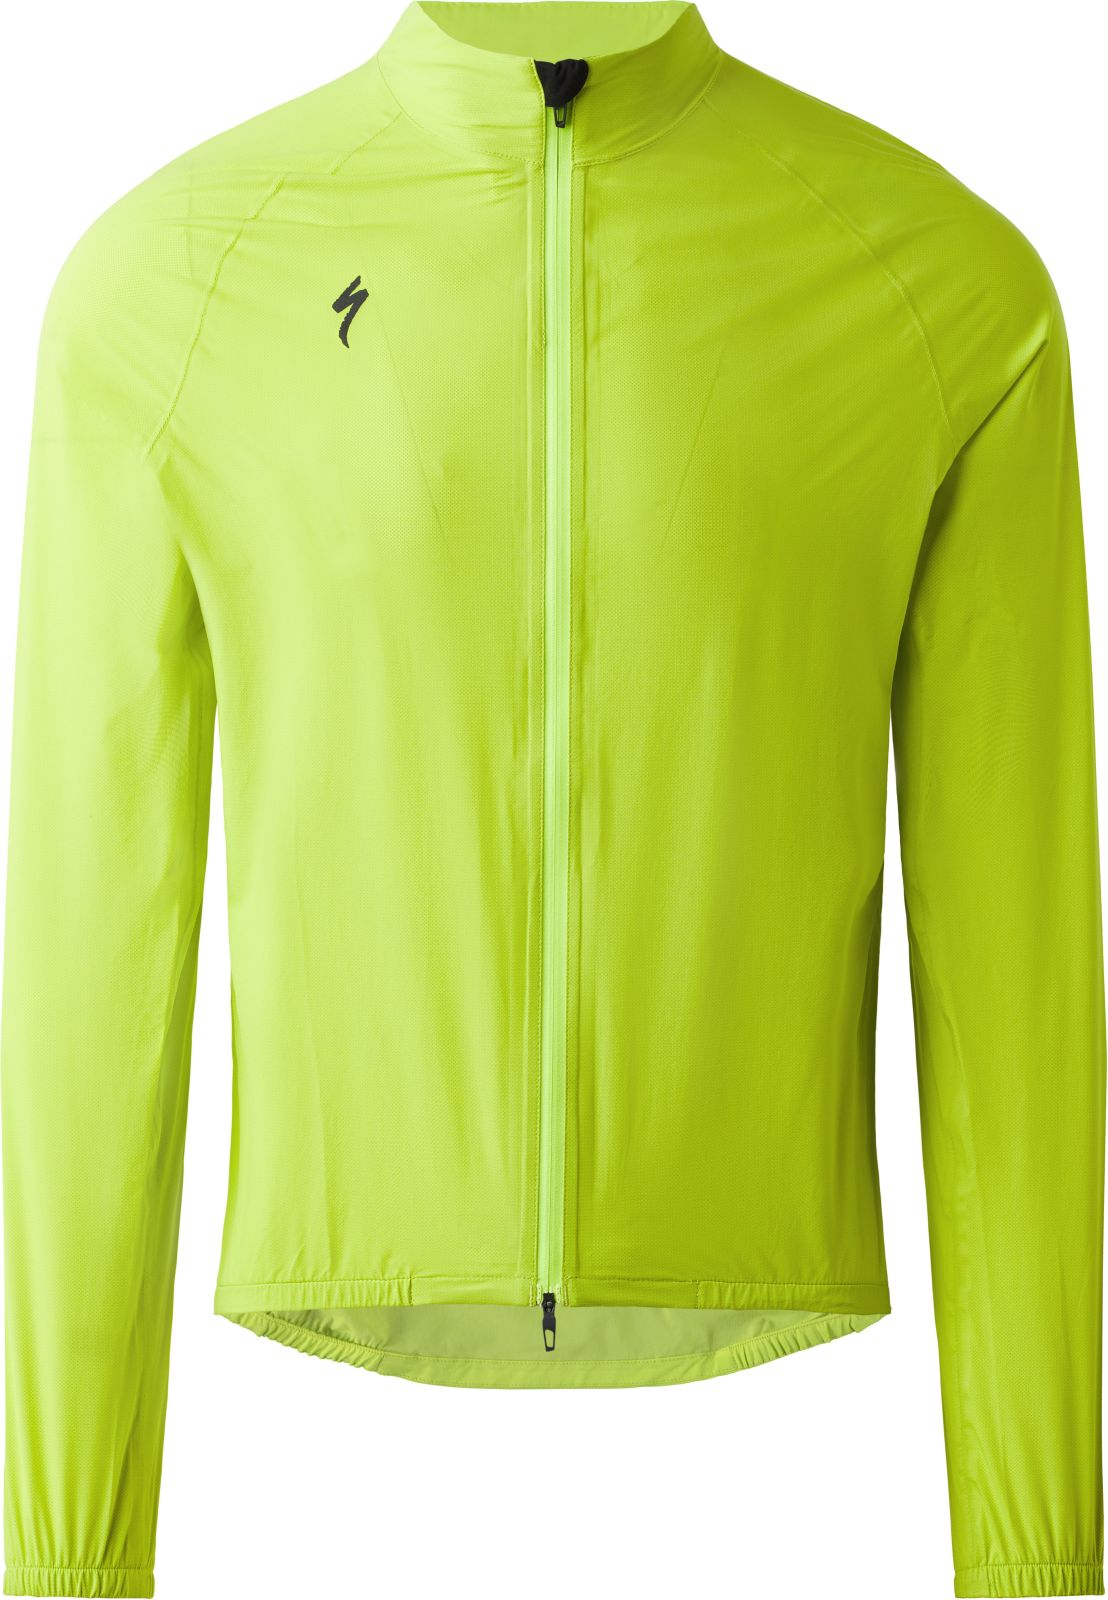 Specialized Deflect H2O Pac Jacket - hyper green M